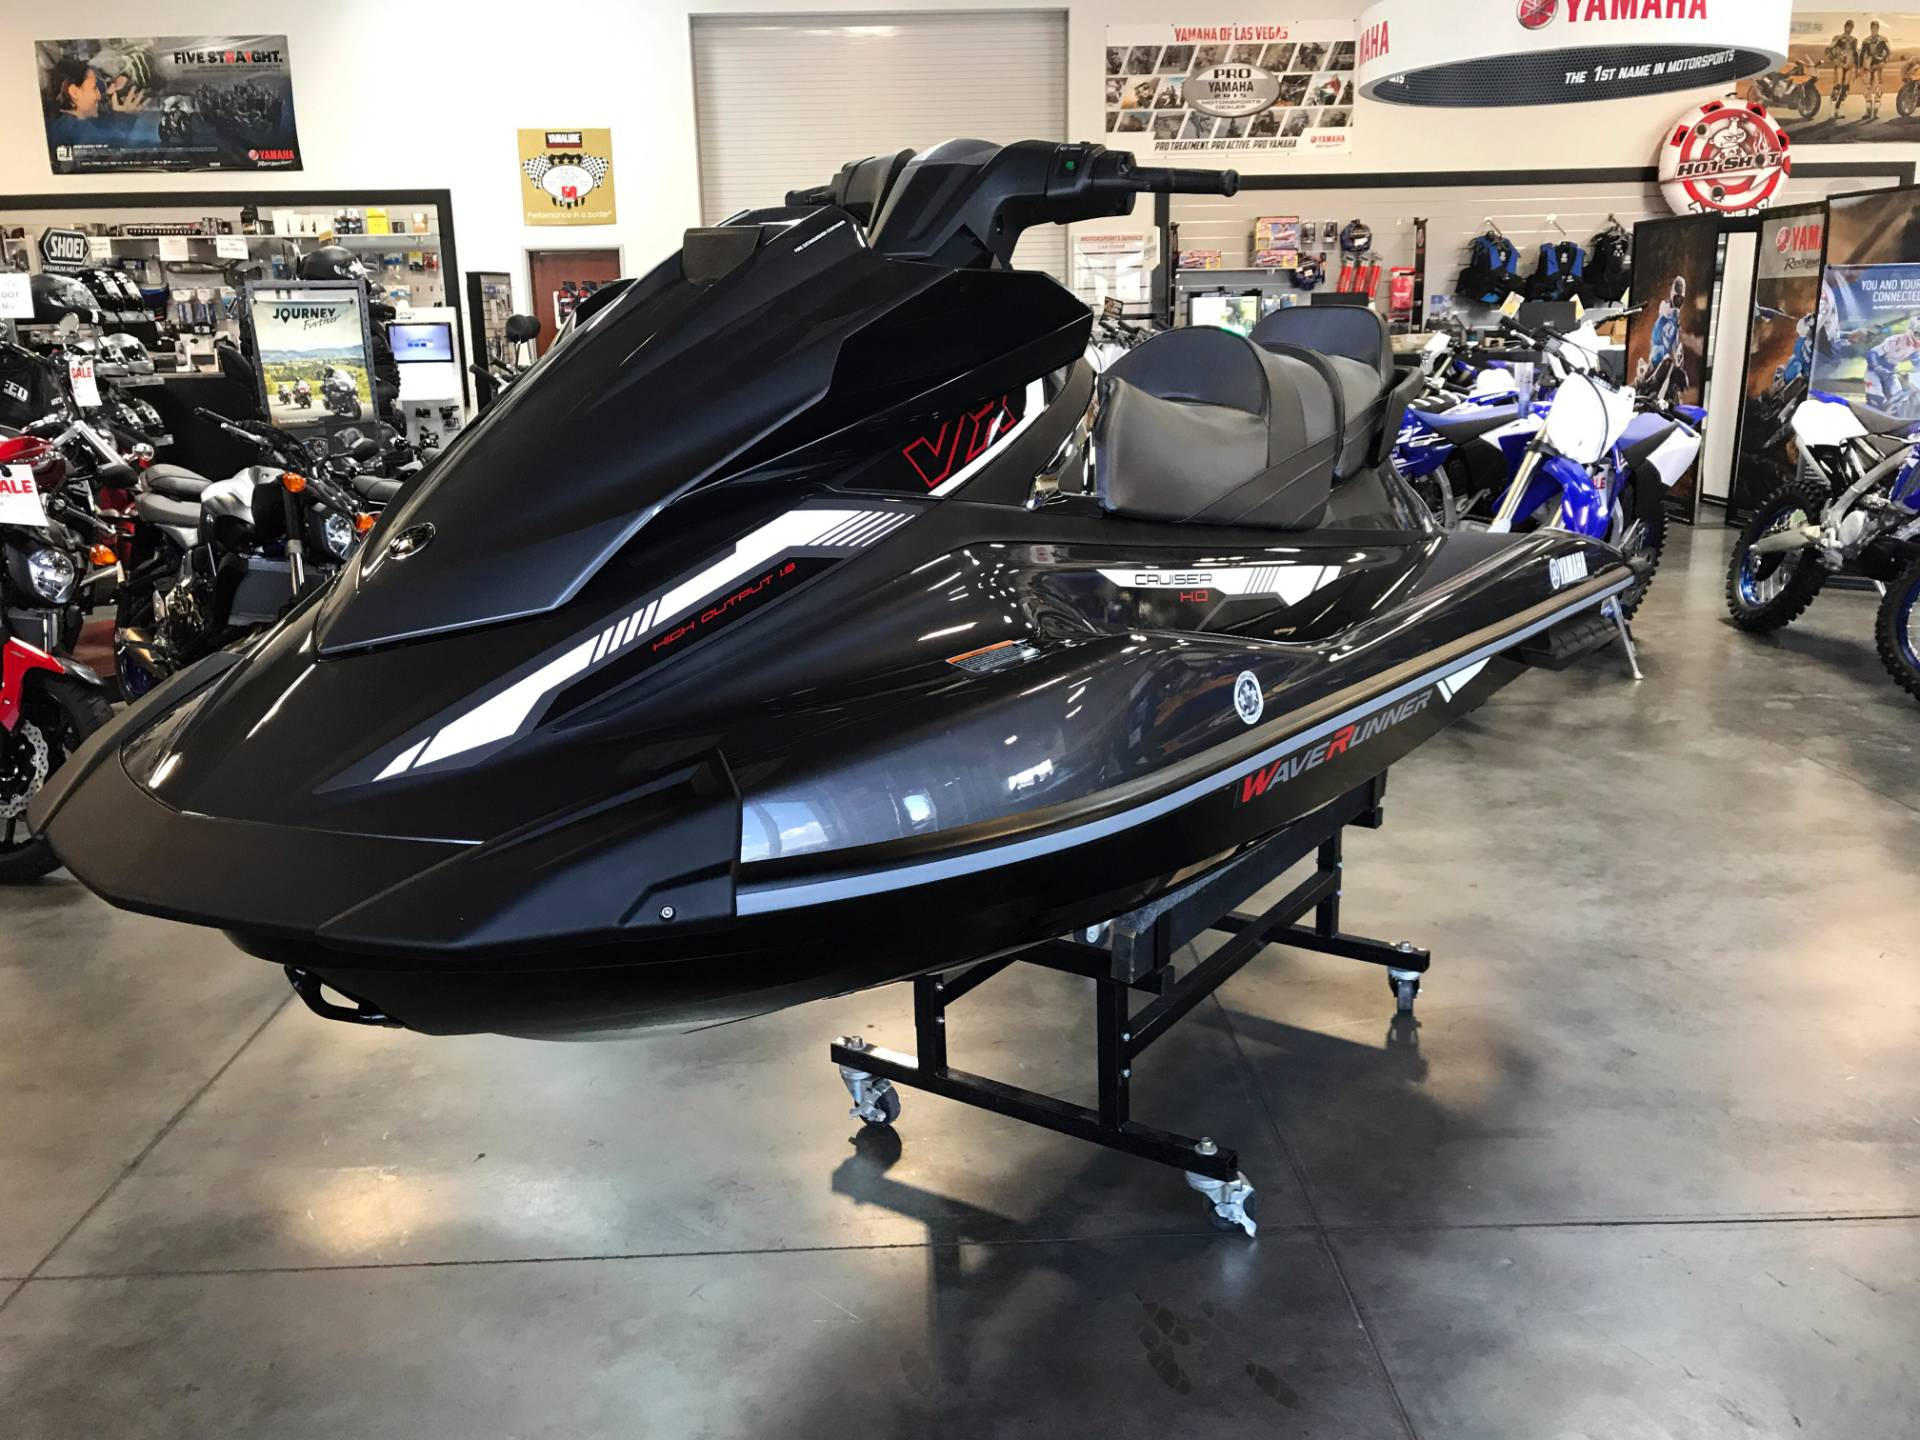 2017 Yamaha VX Cruiser HO for sale 21422